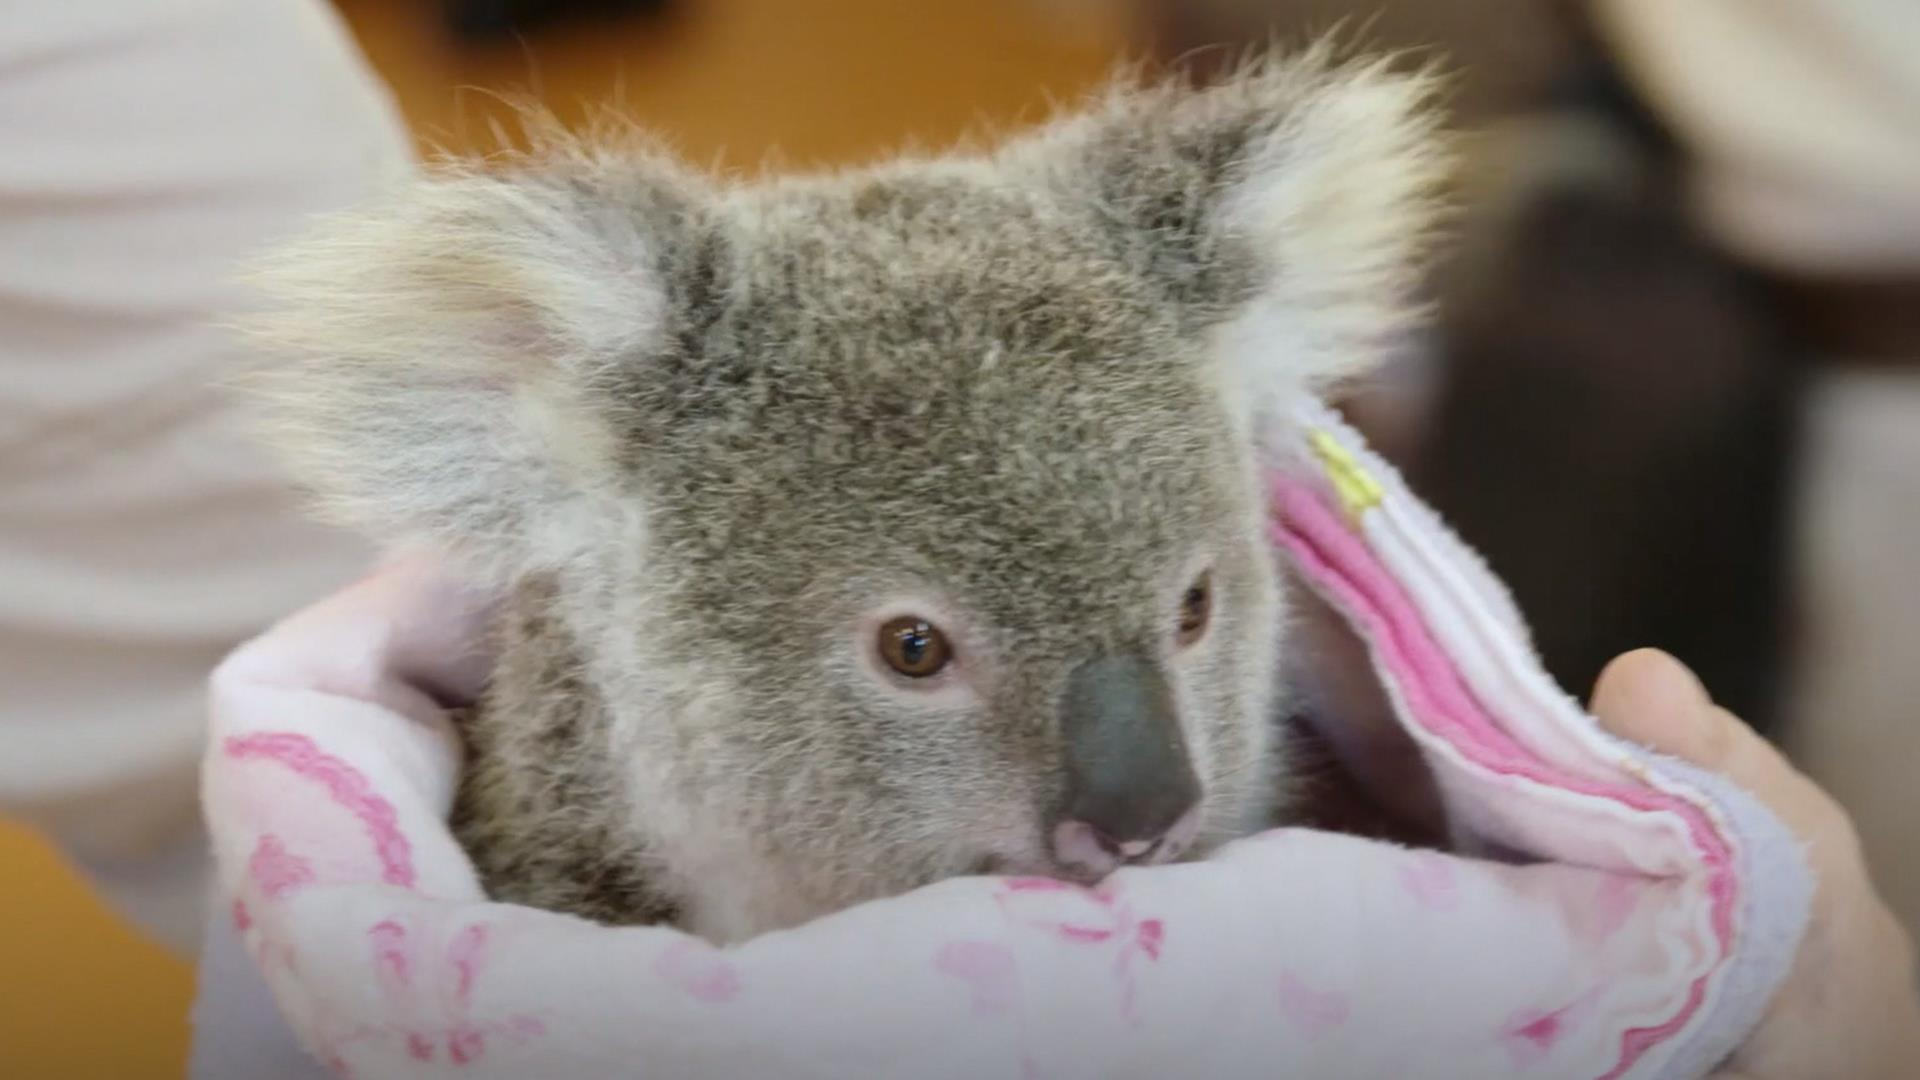 Orphaned Baby Koala Cuddles Stuffed Animal After Losing Mom